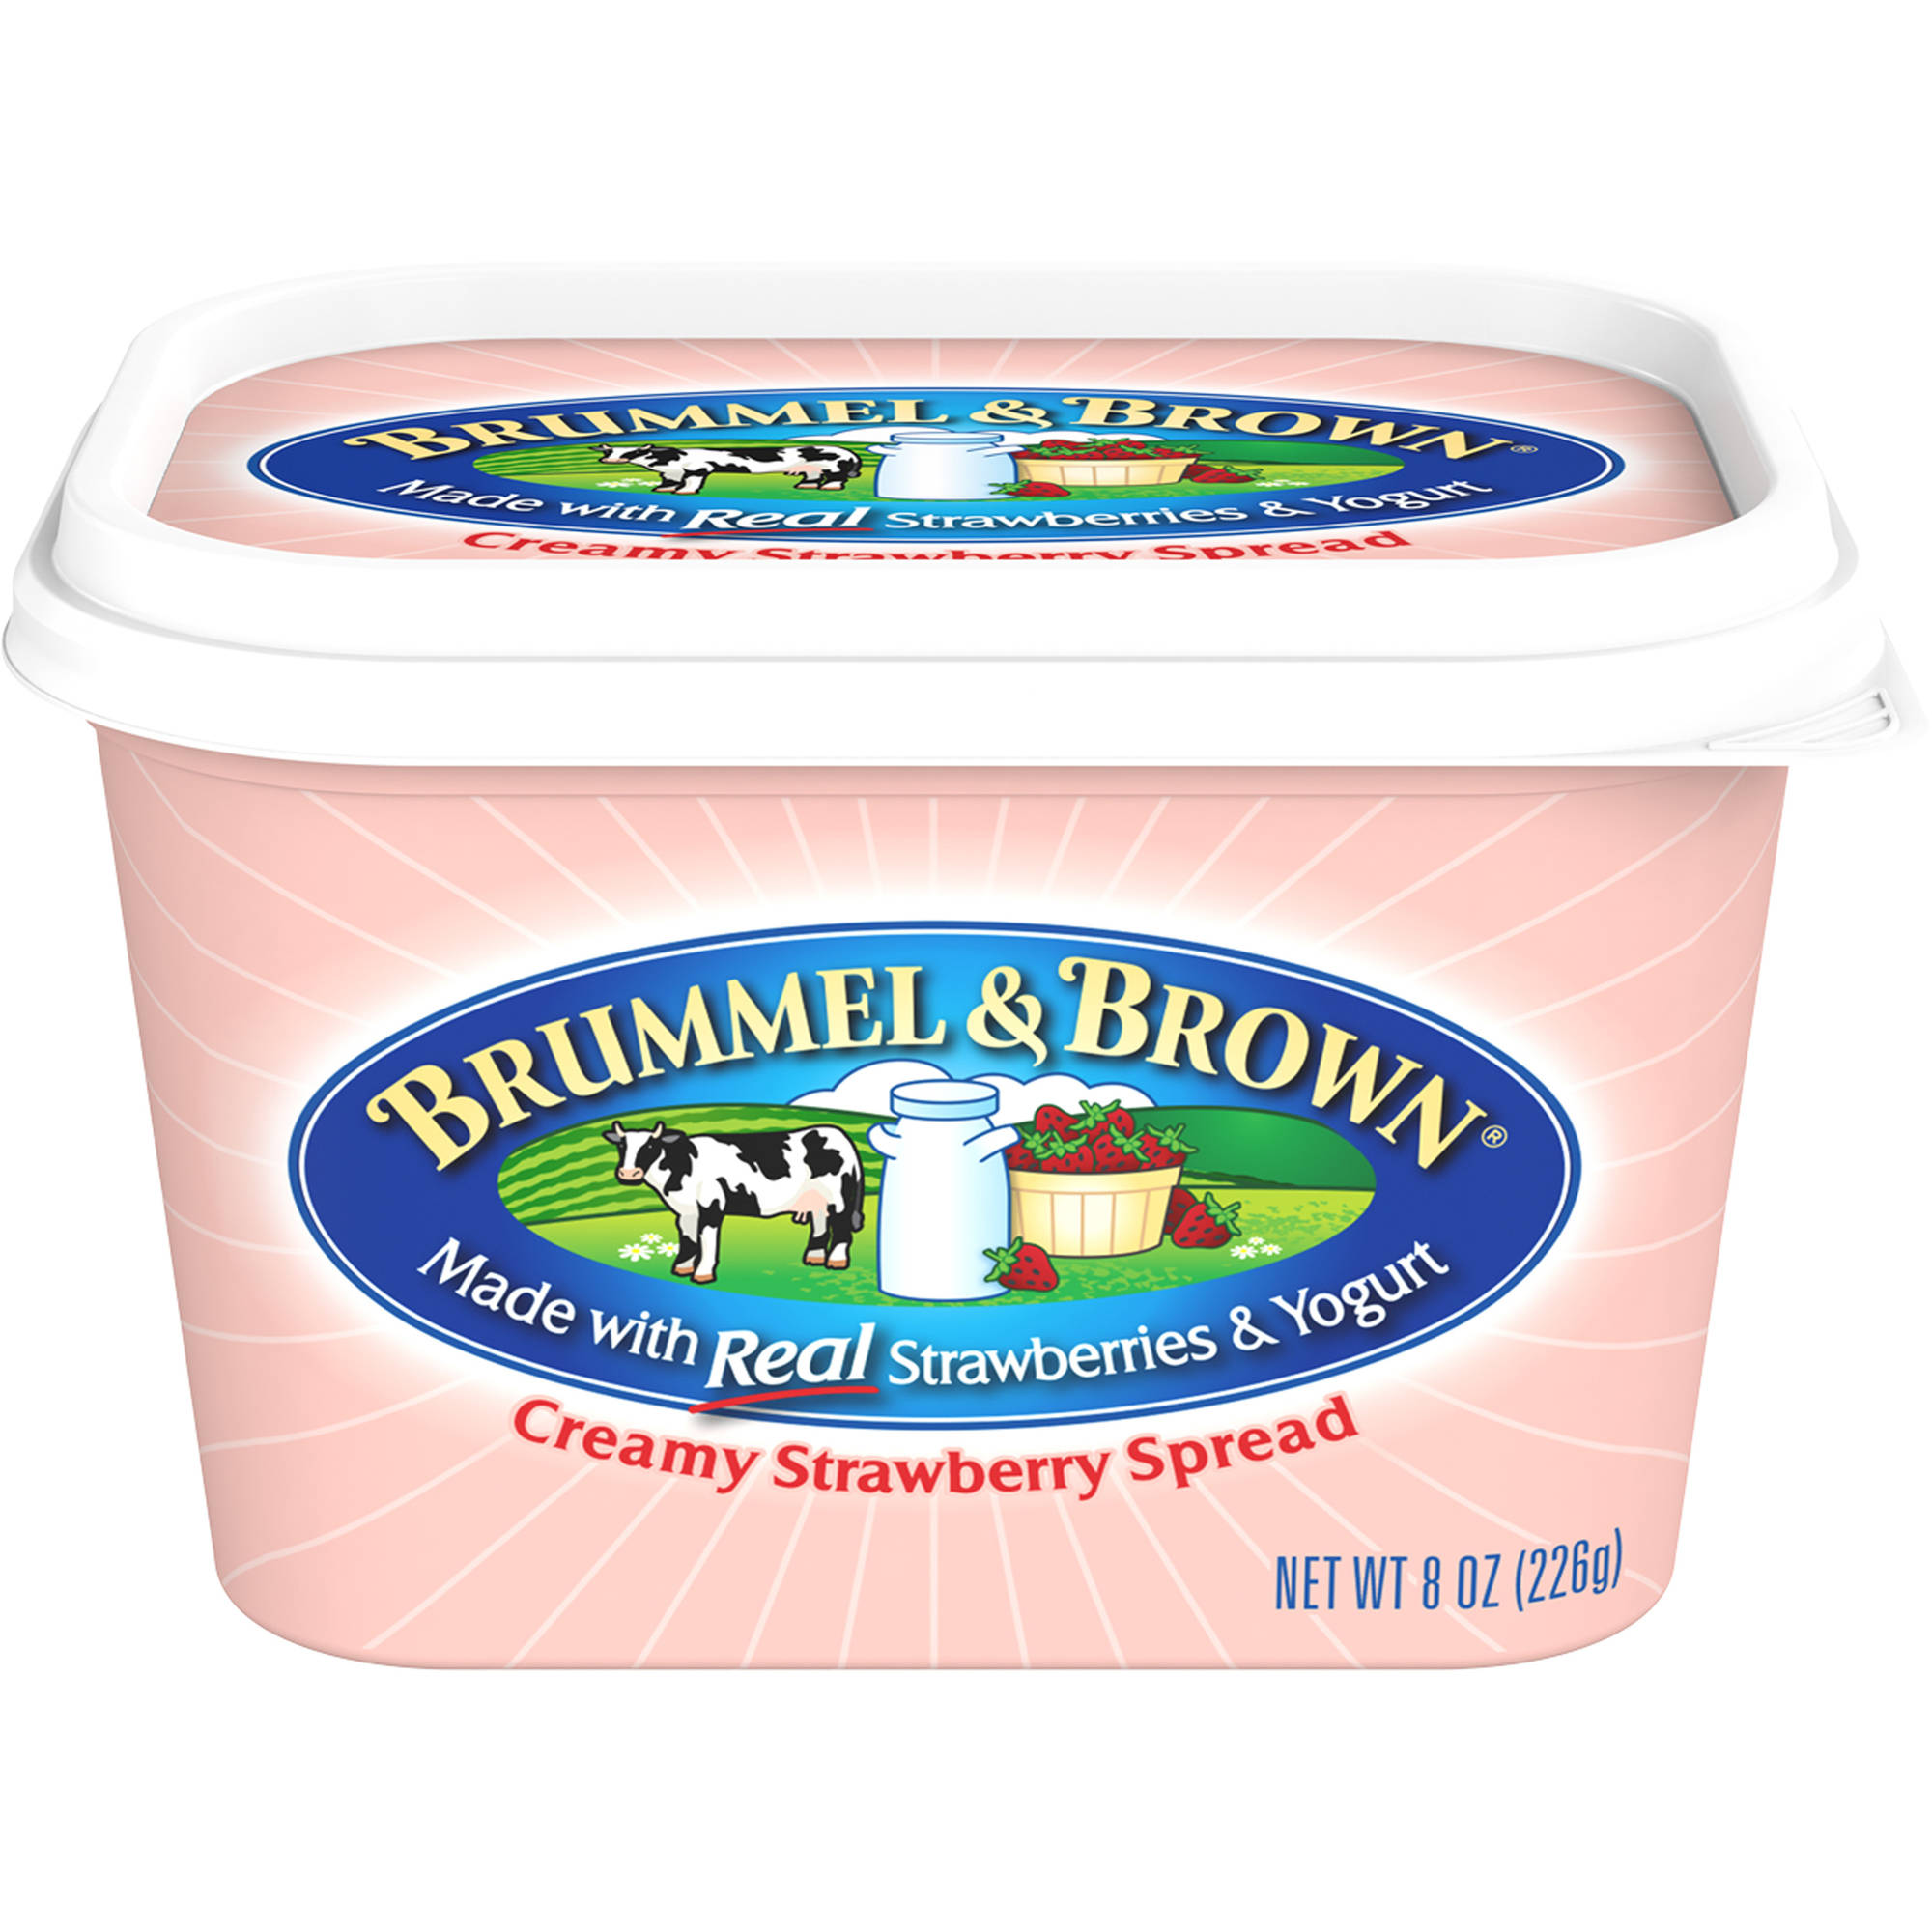 Brummel & Brown Strawberry Buttery Spread with Real Strawberries and Yogurt, 8 oz